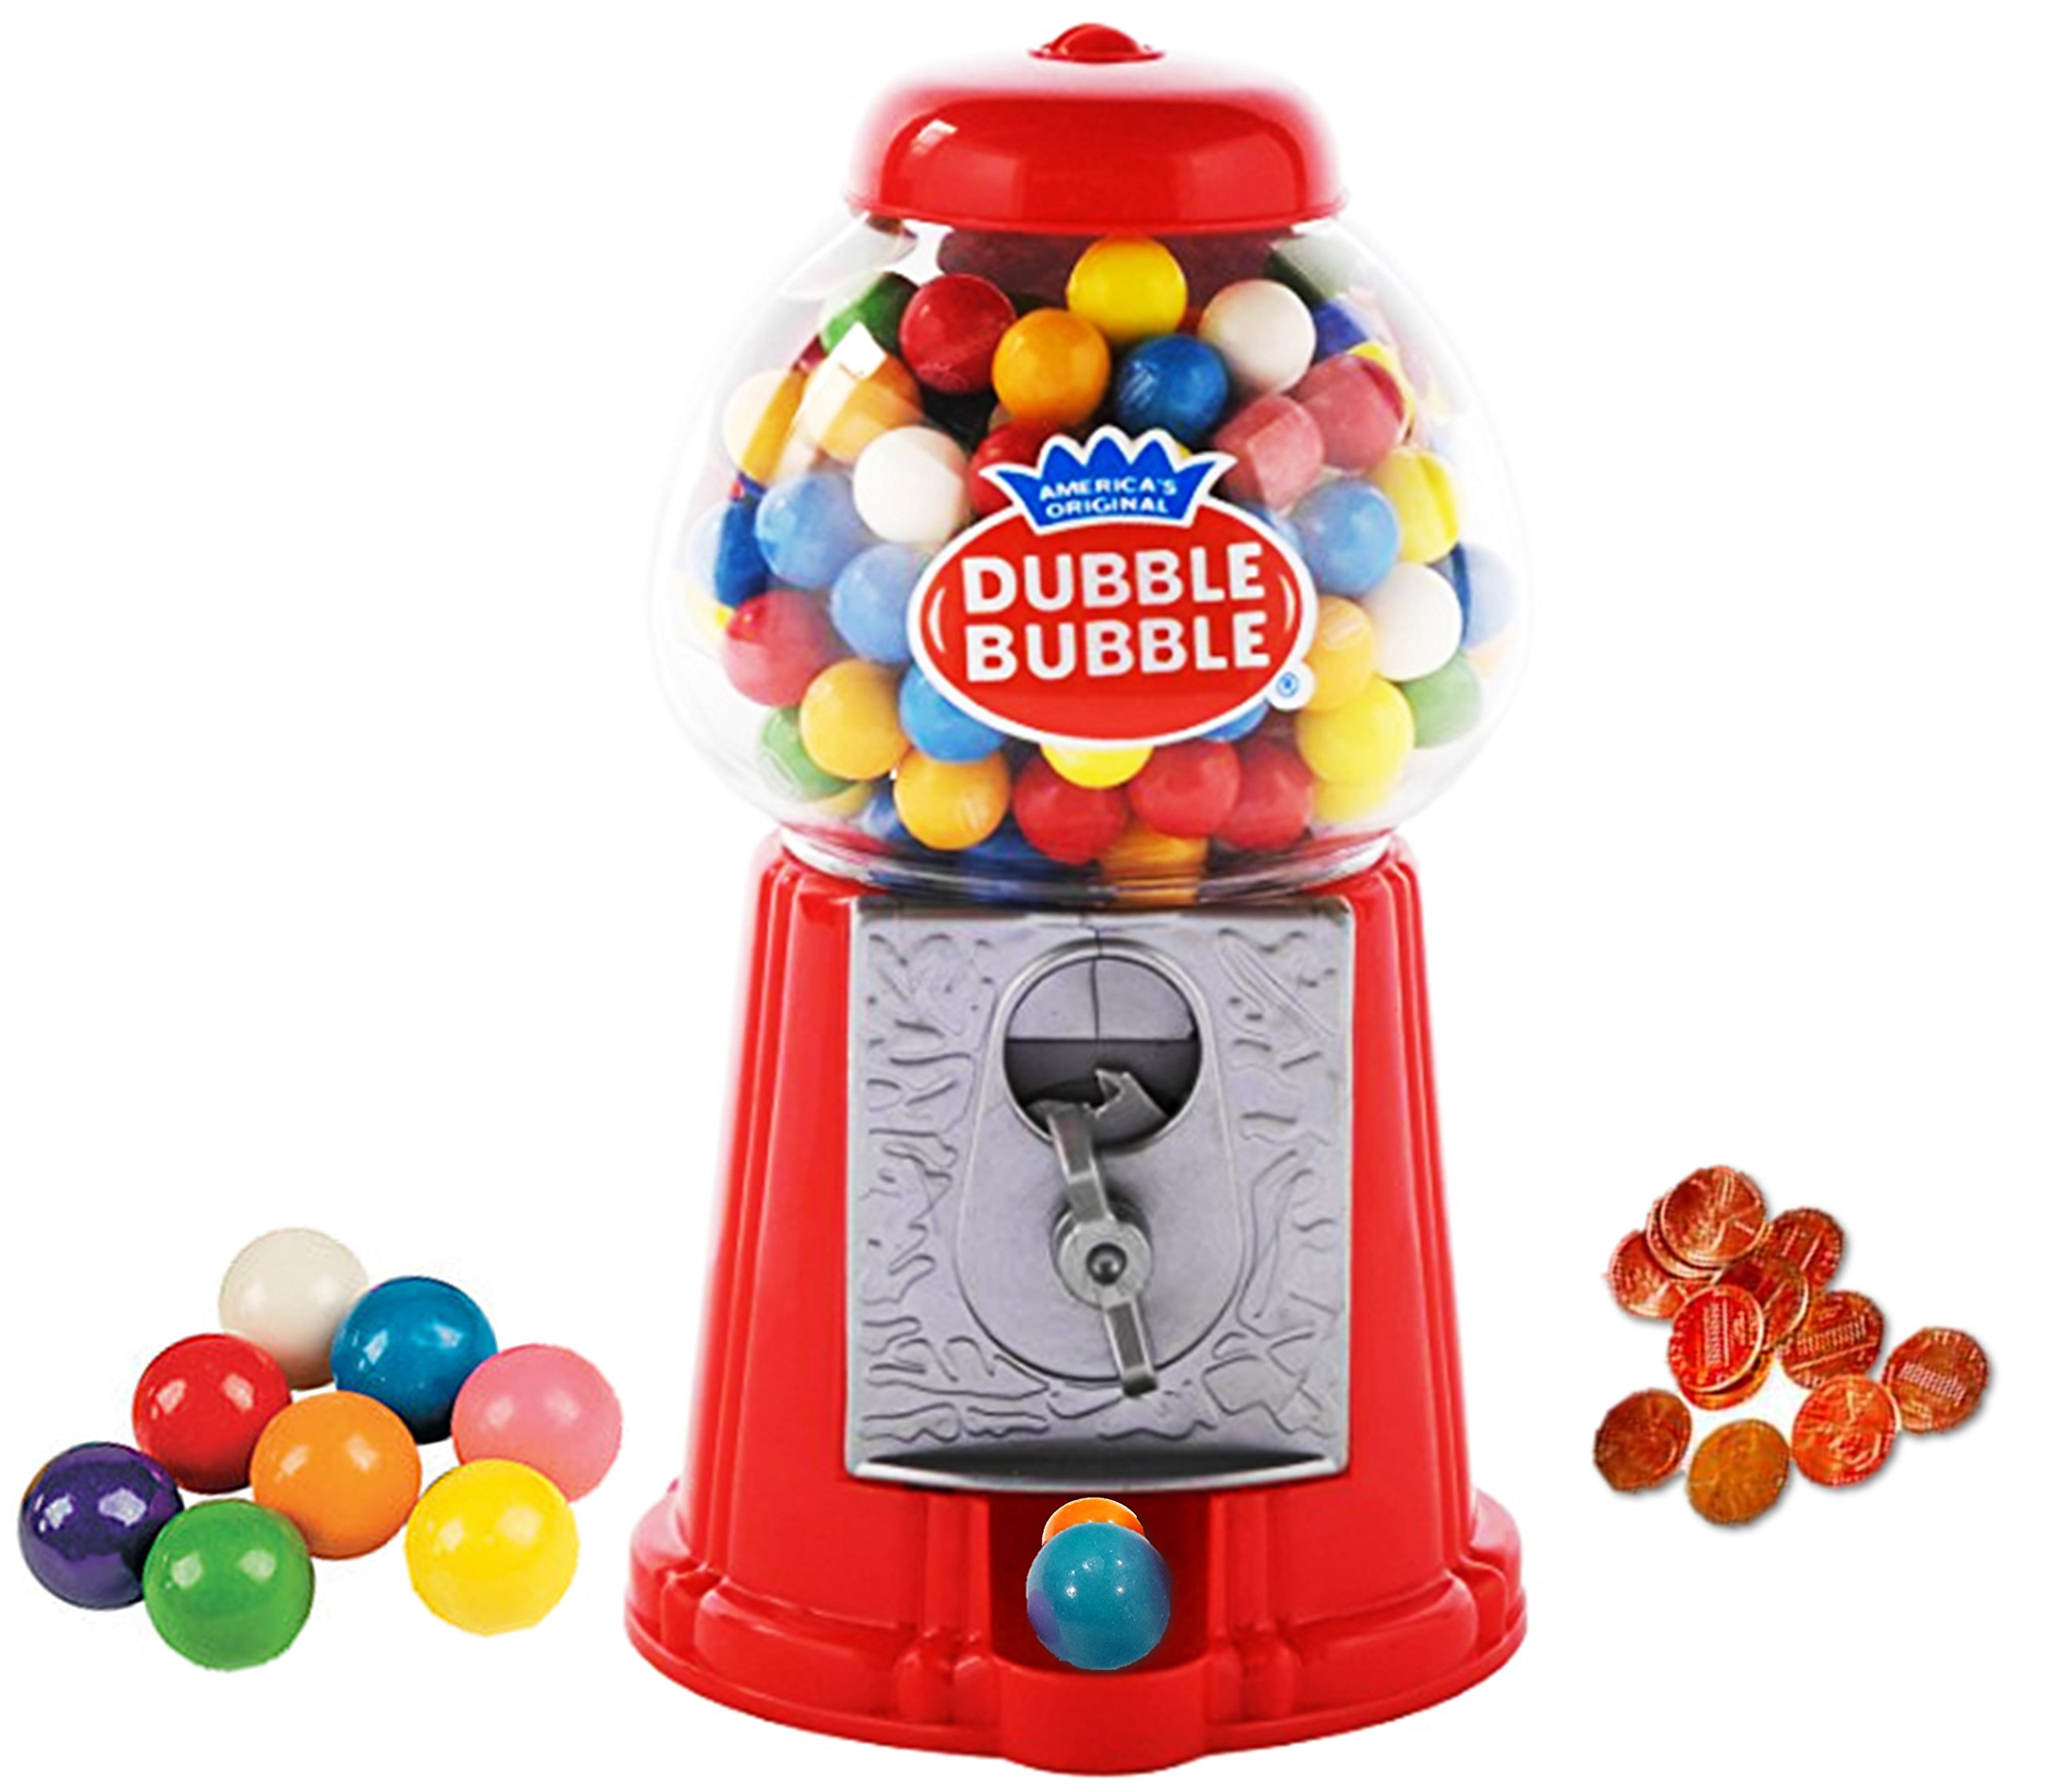 Playo 8.5'' Coin Operated Gumball Machine Toy Bank - Dubble Bubble Classic Red Style Includes 45 Gum Balls - Kids Coin Bank